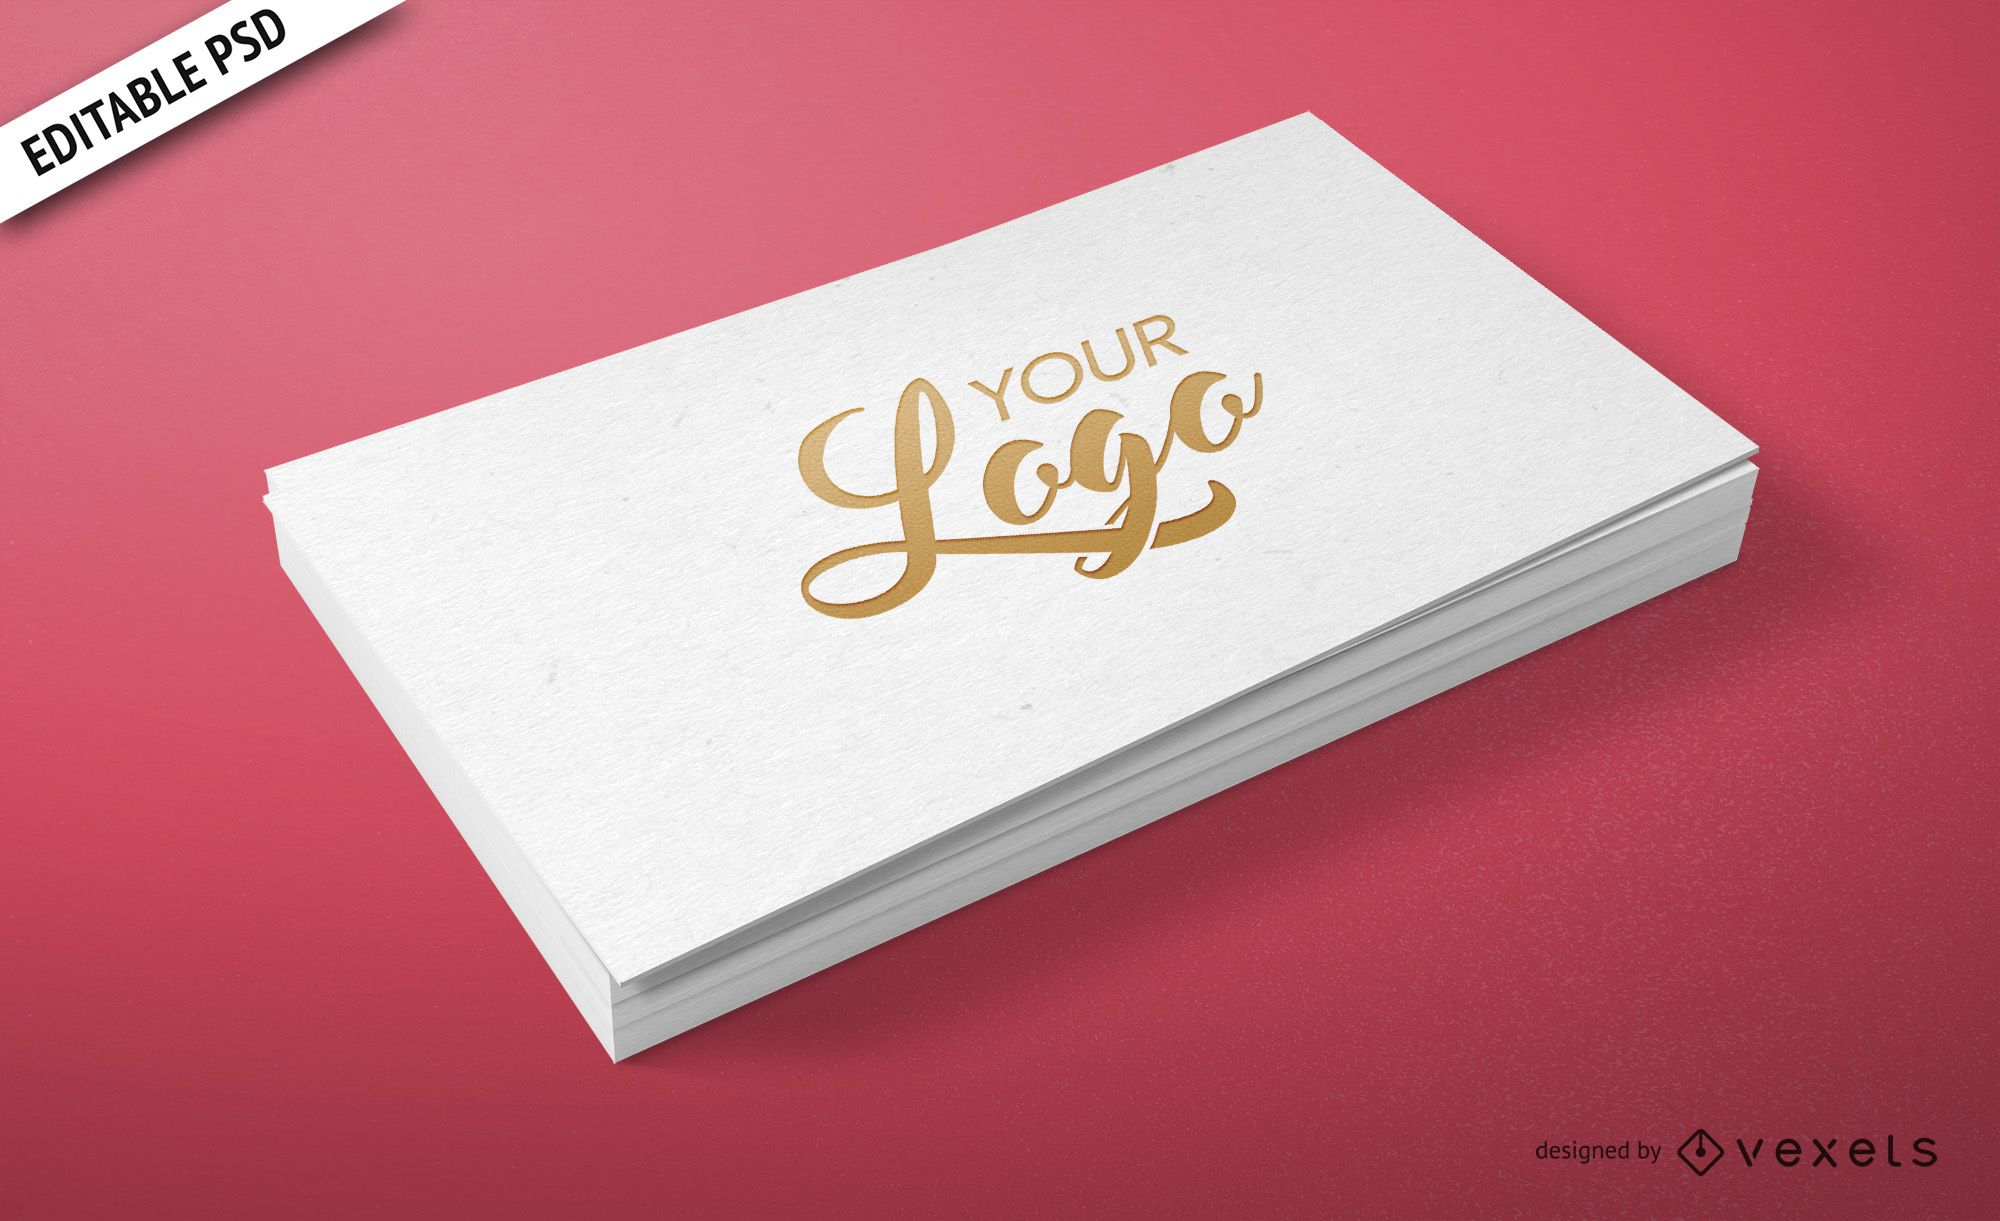 Personal business card PSD mockup - PSD download